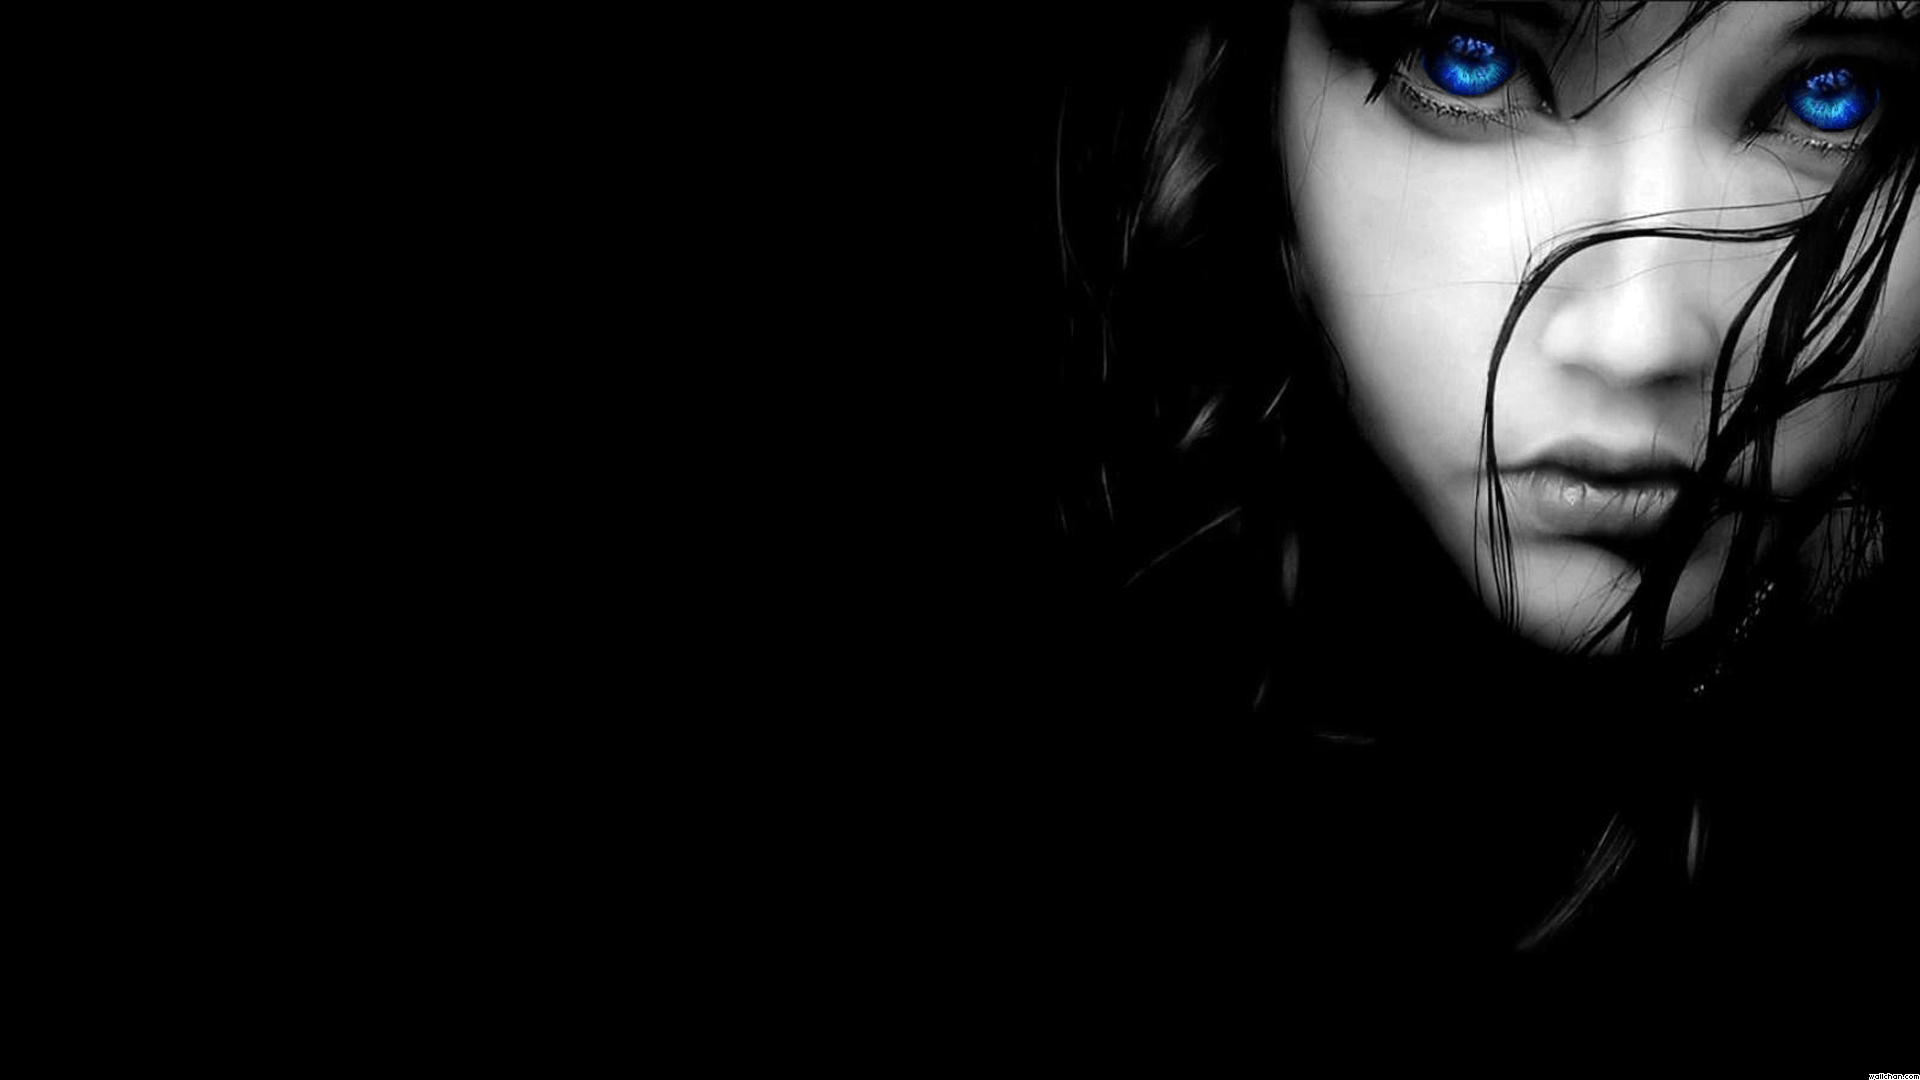 Girl Eyes Wallpapers Wallpaper Cave